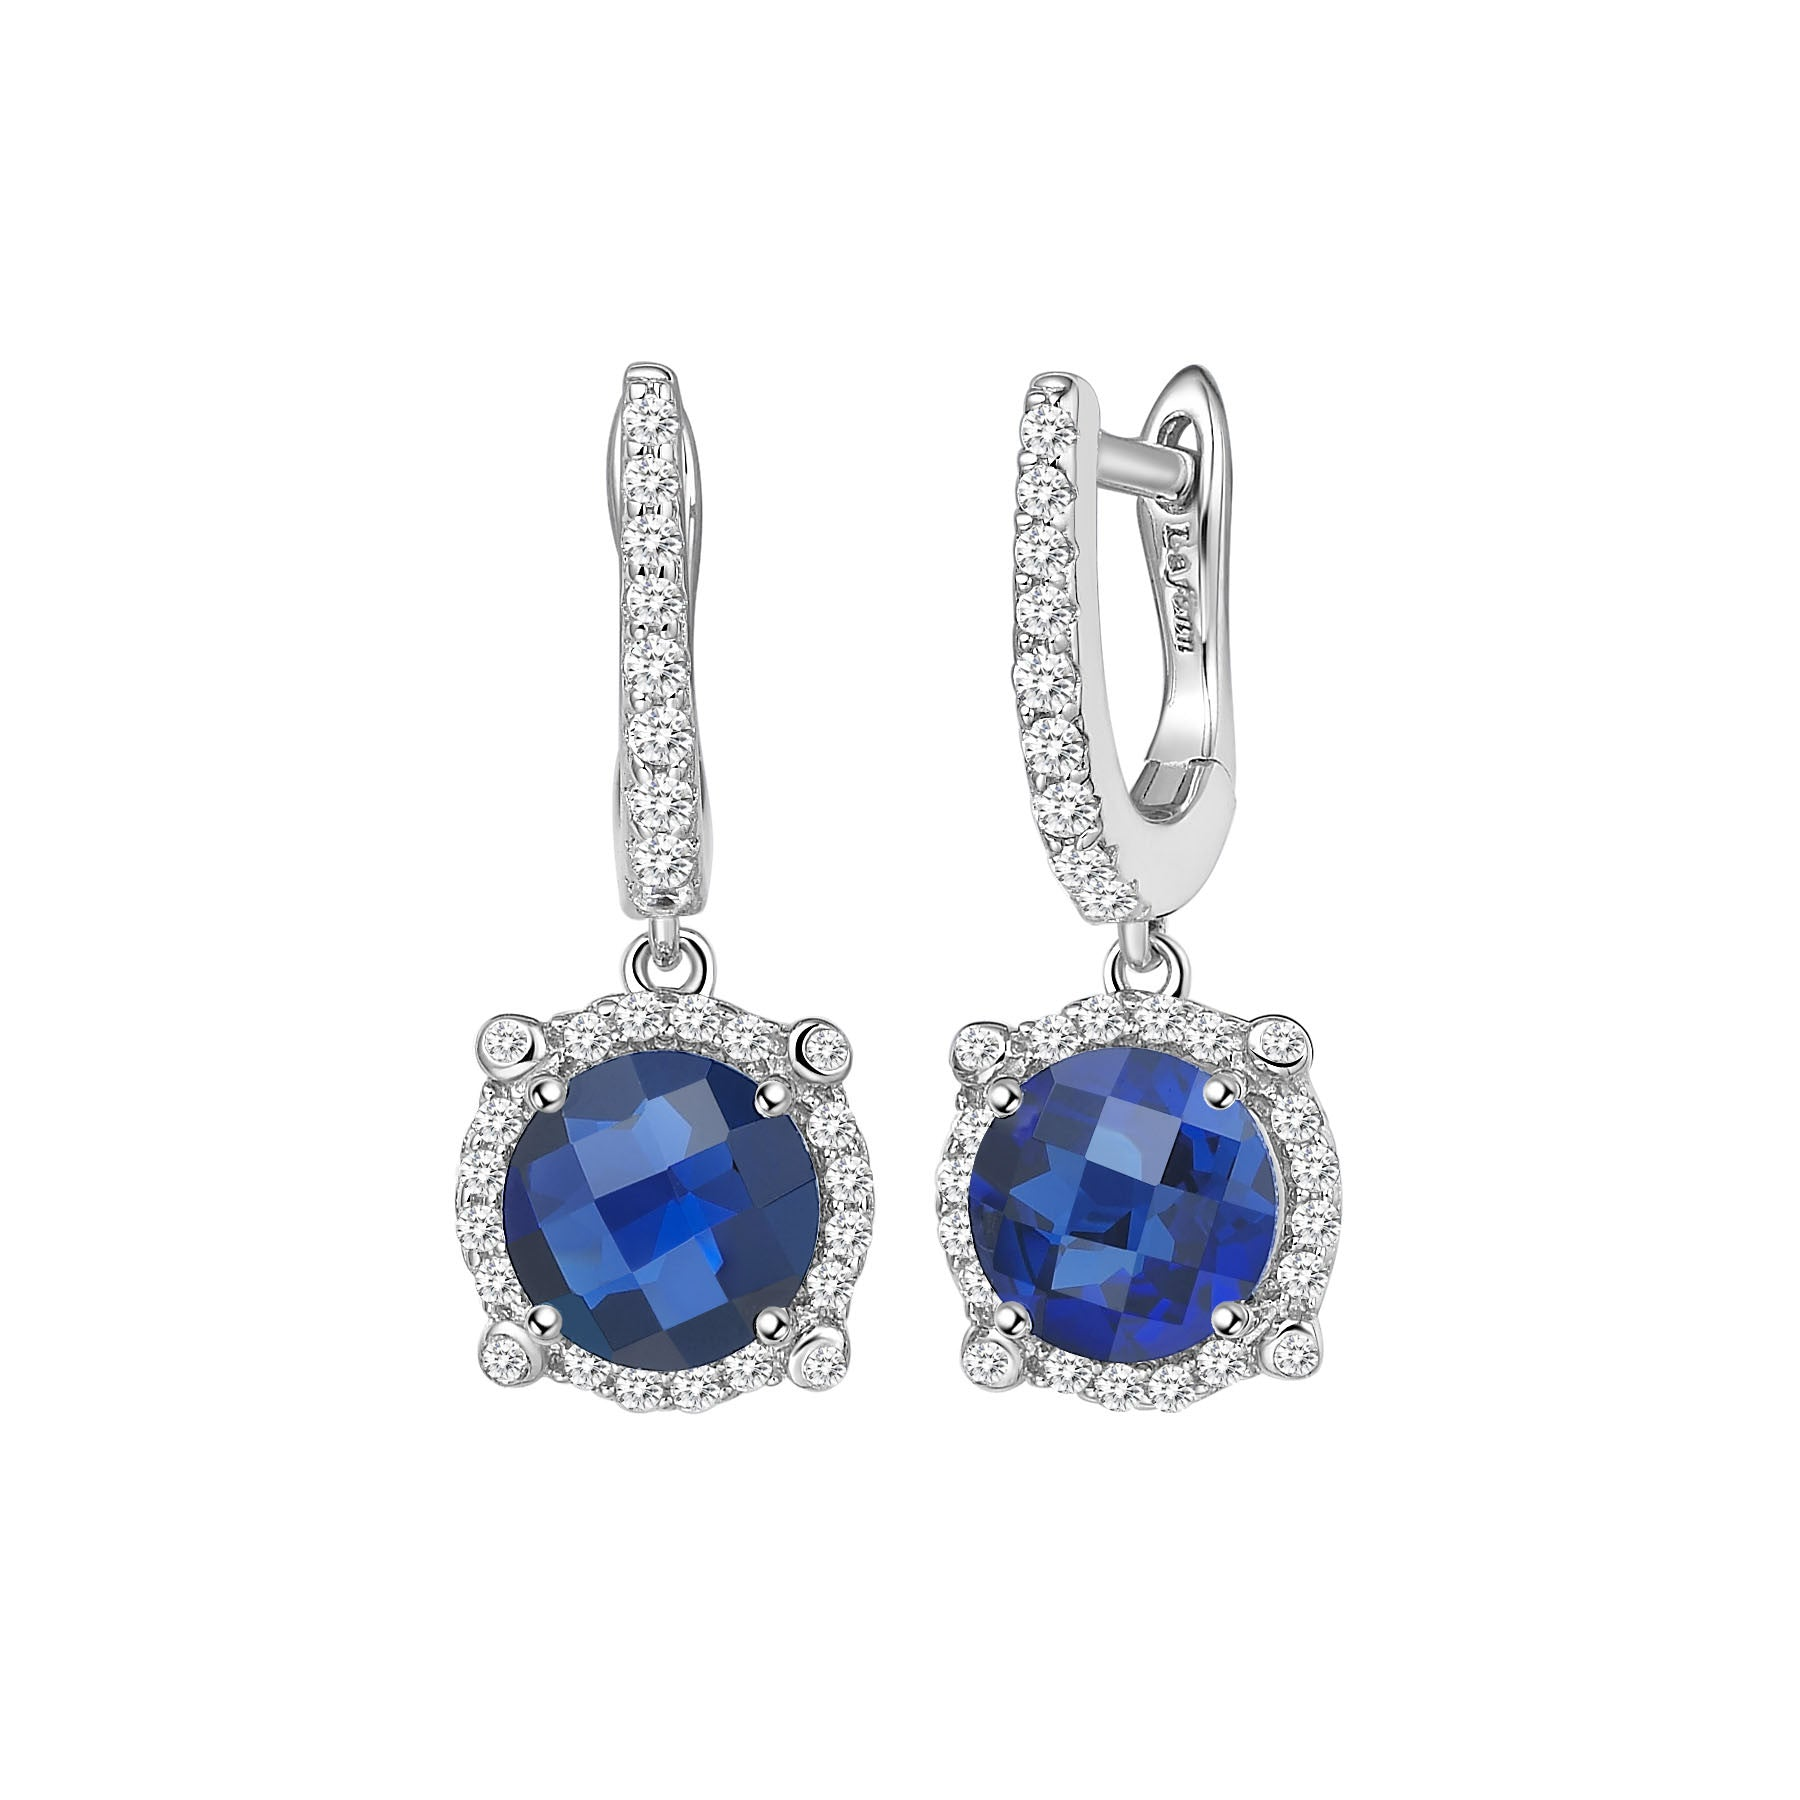 Sterling Silver and Platinum Lab Grown Sapphires Earrings